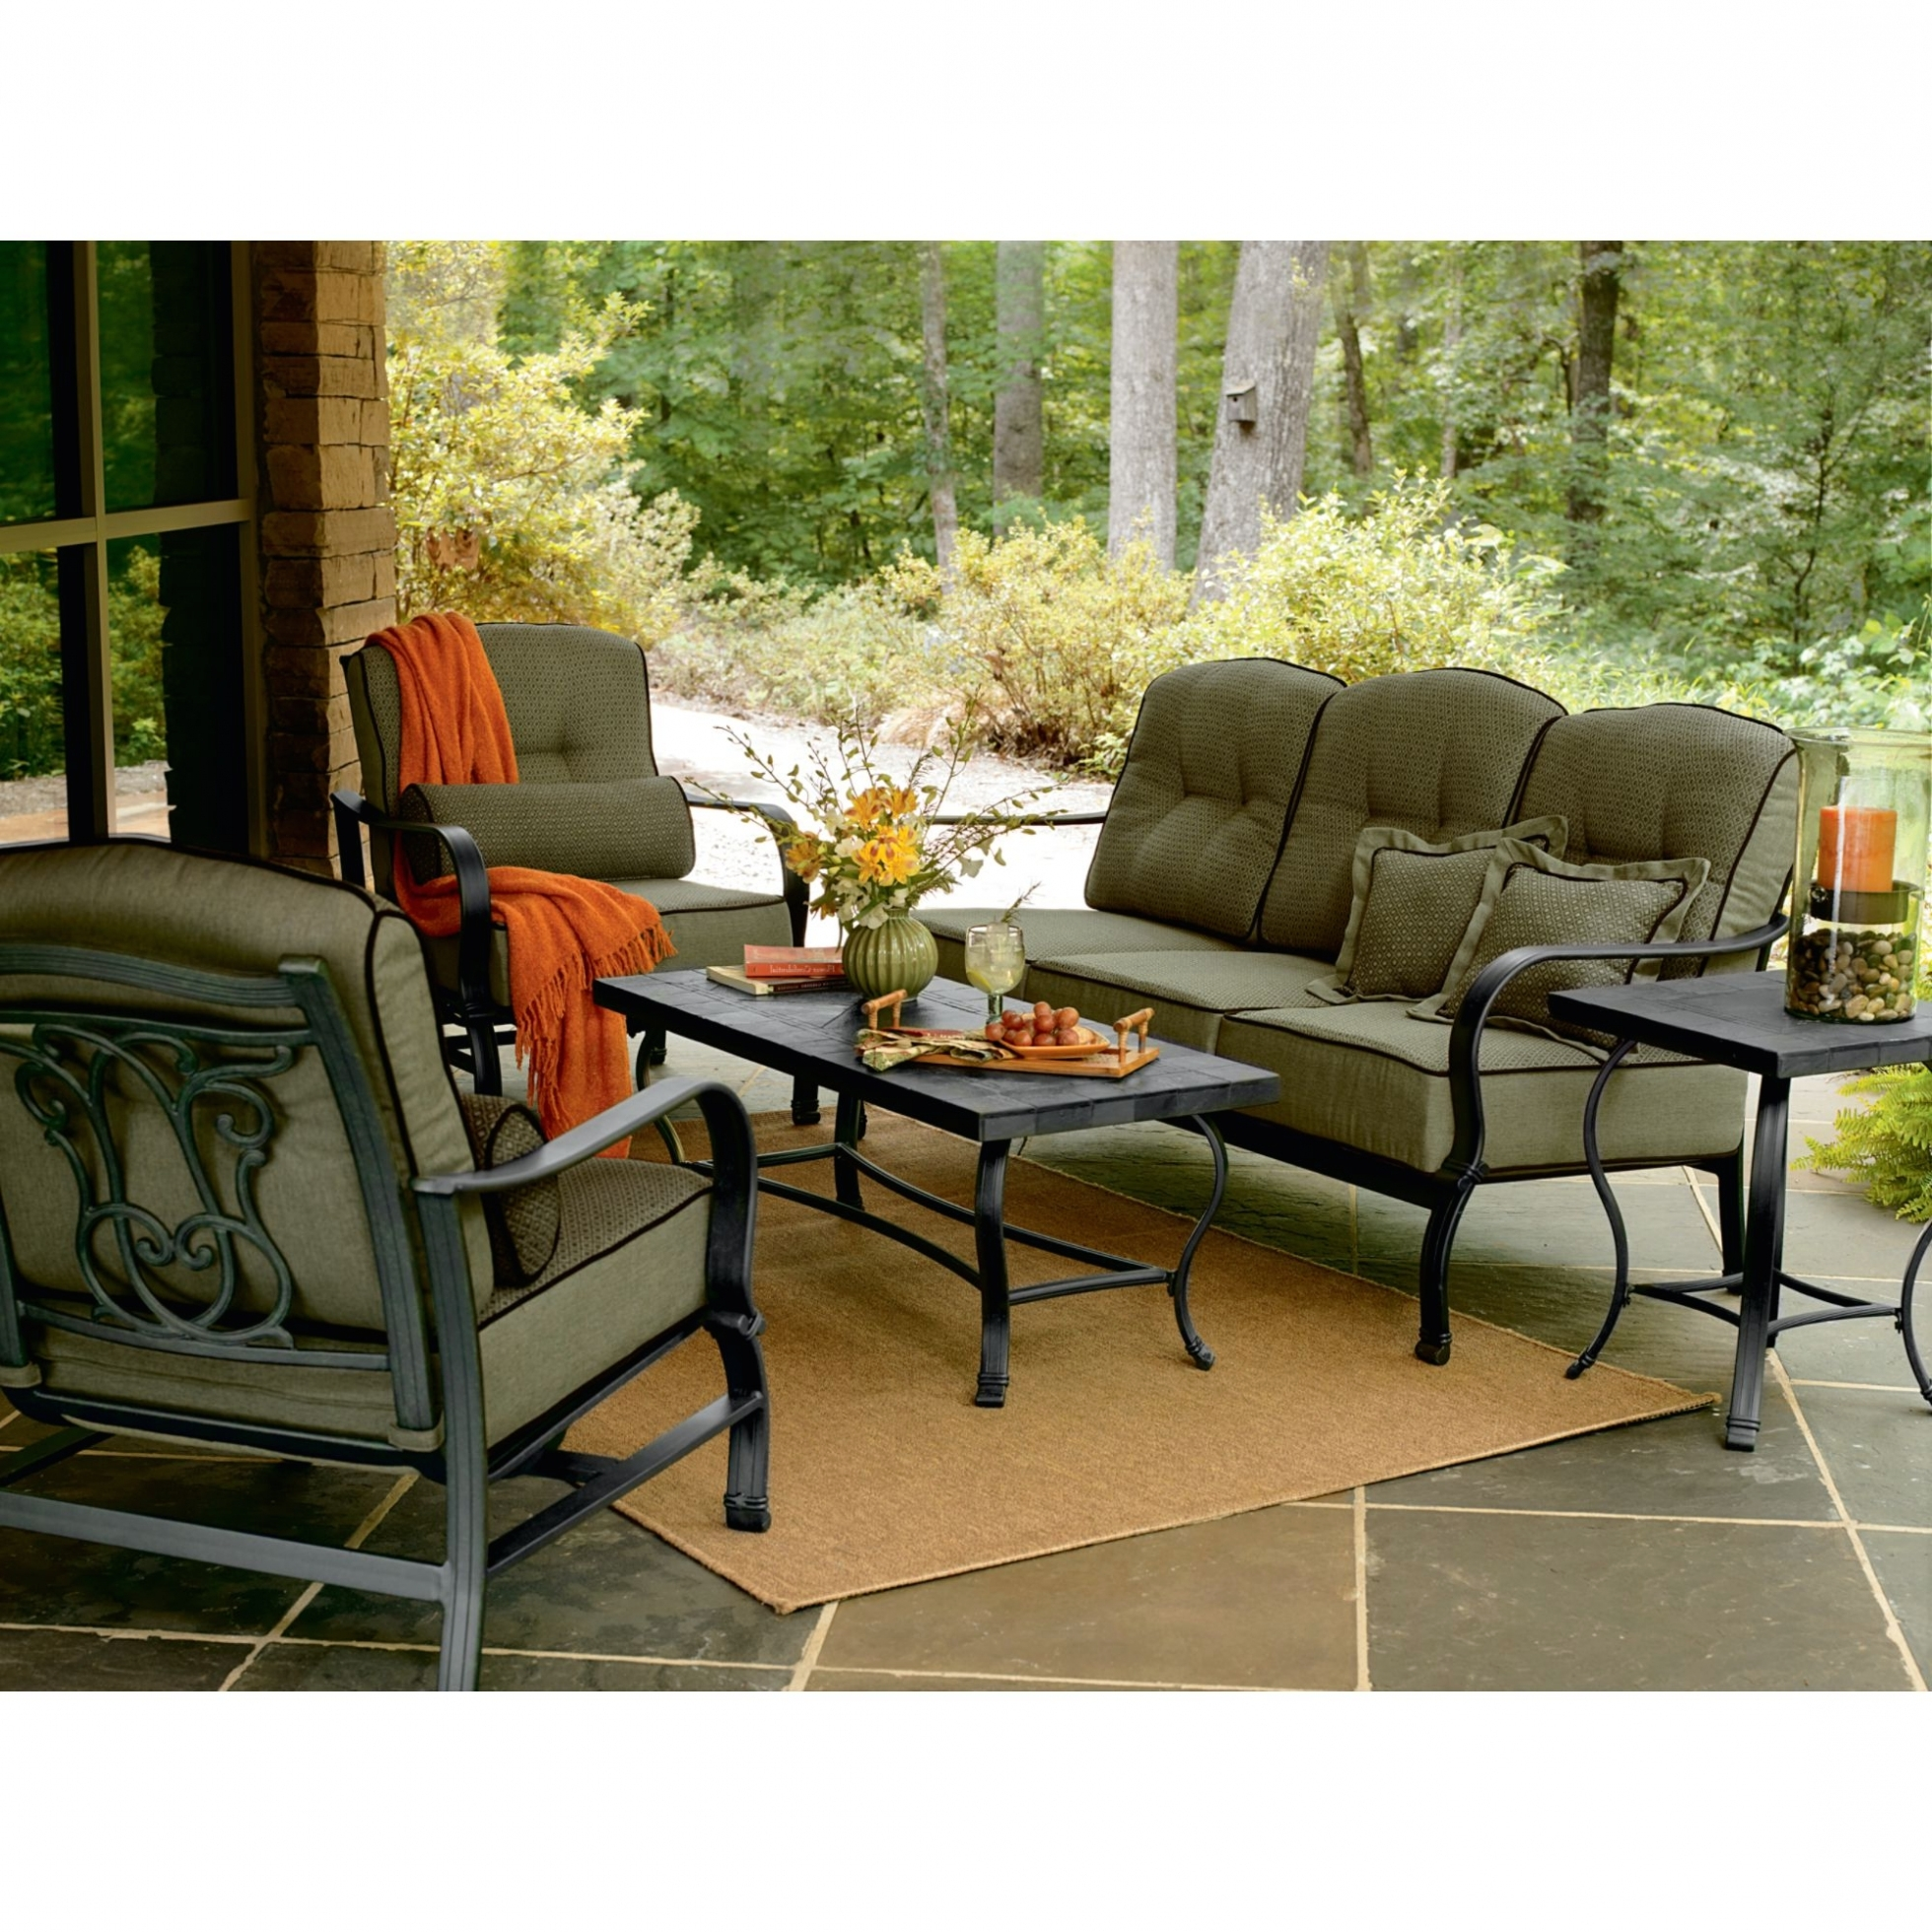 Lazy Boy Patio Conversation Sets In Most Current Lazy Boy Outdoor Furniture – Furniture Ideas (View 6 of 20)